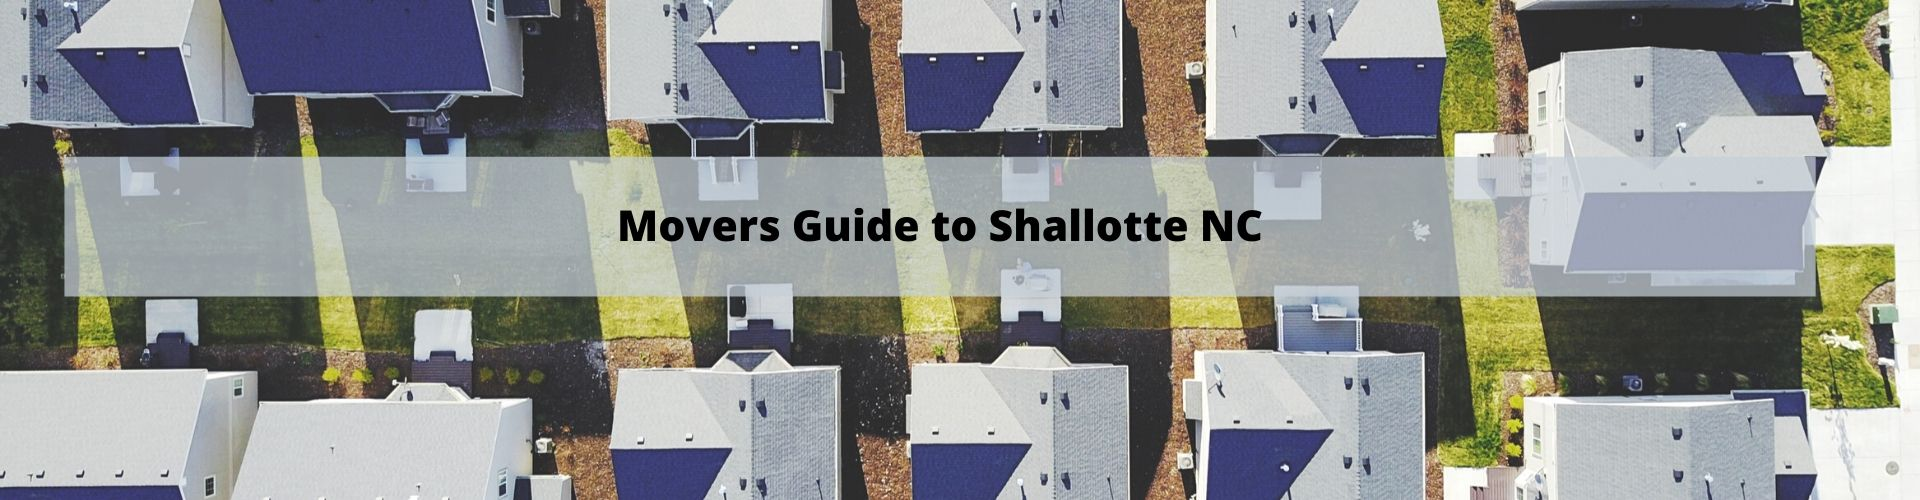 Mover's Guide To Shallotte NC